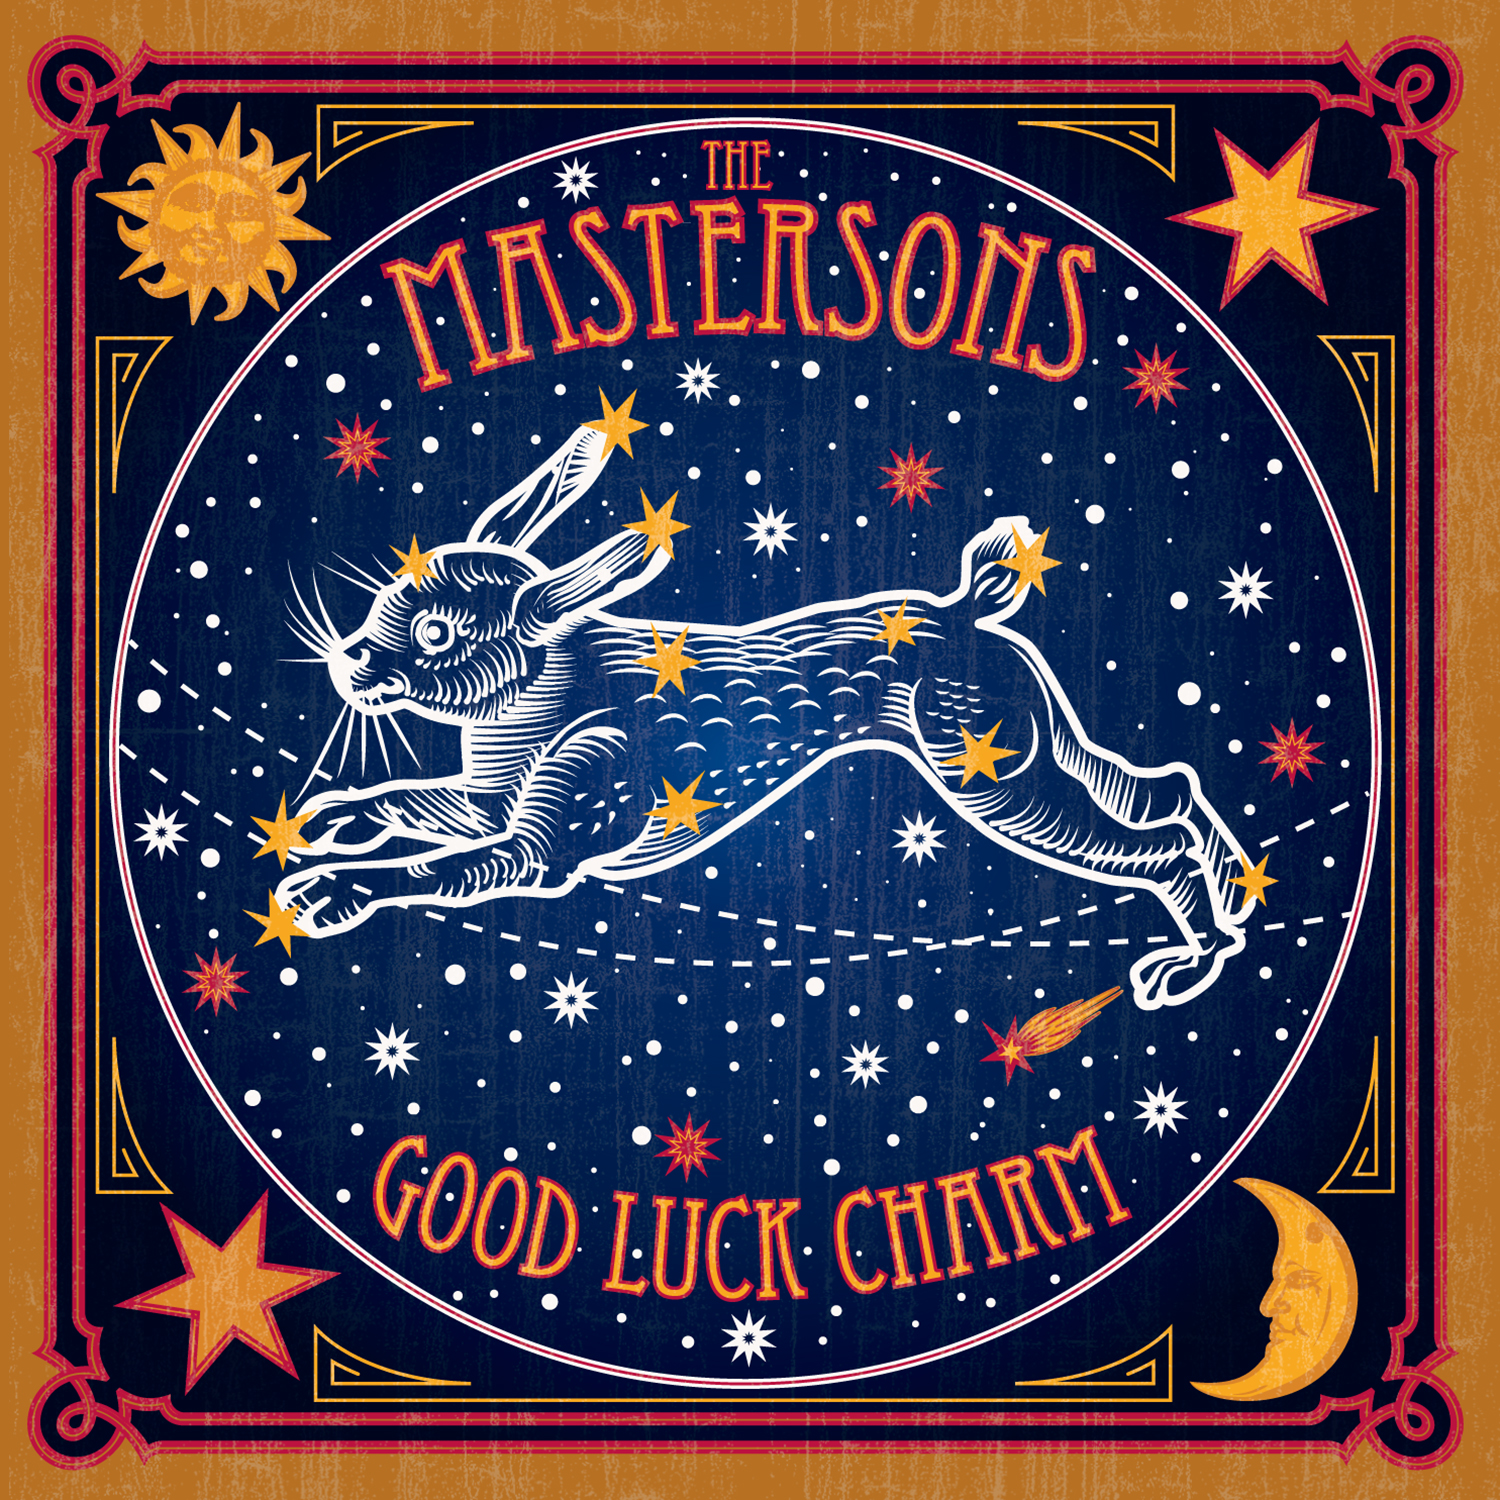 TheMastersons-GoodLuckCharm-Cover.jpg